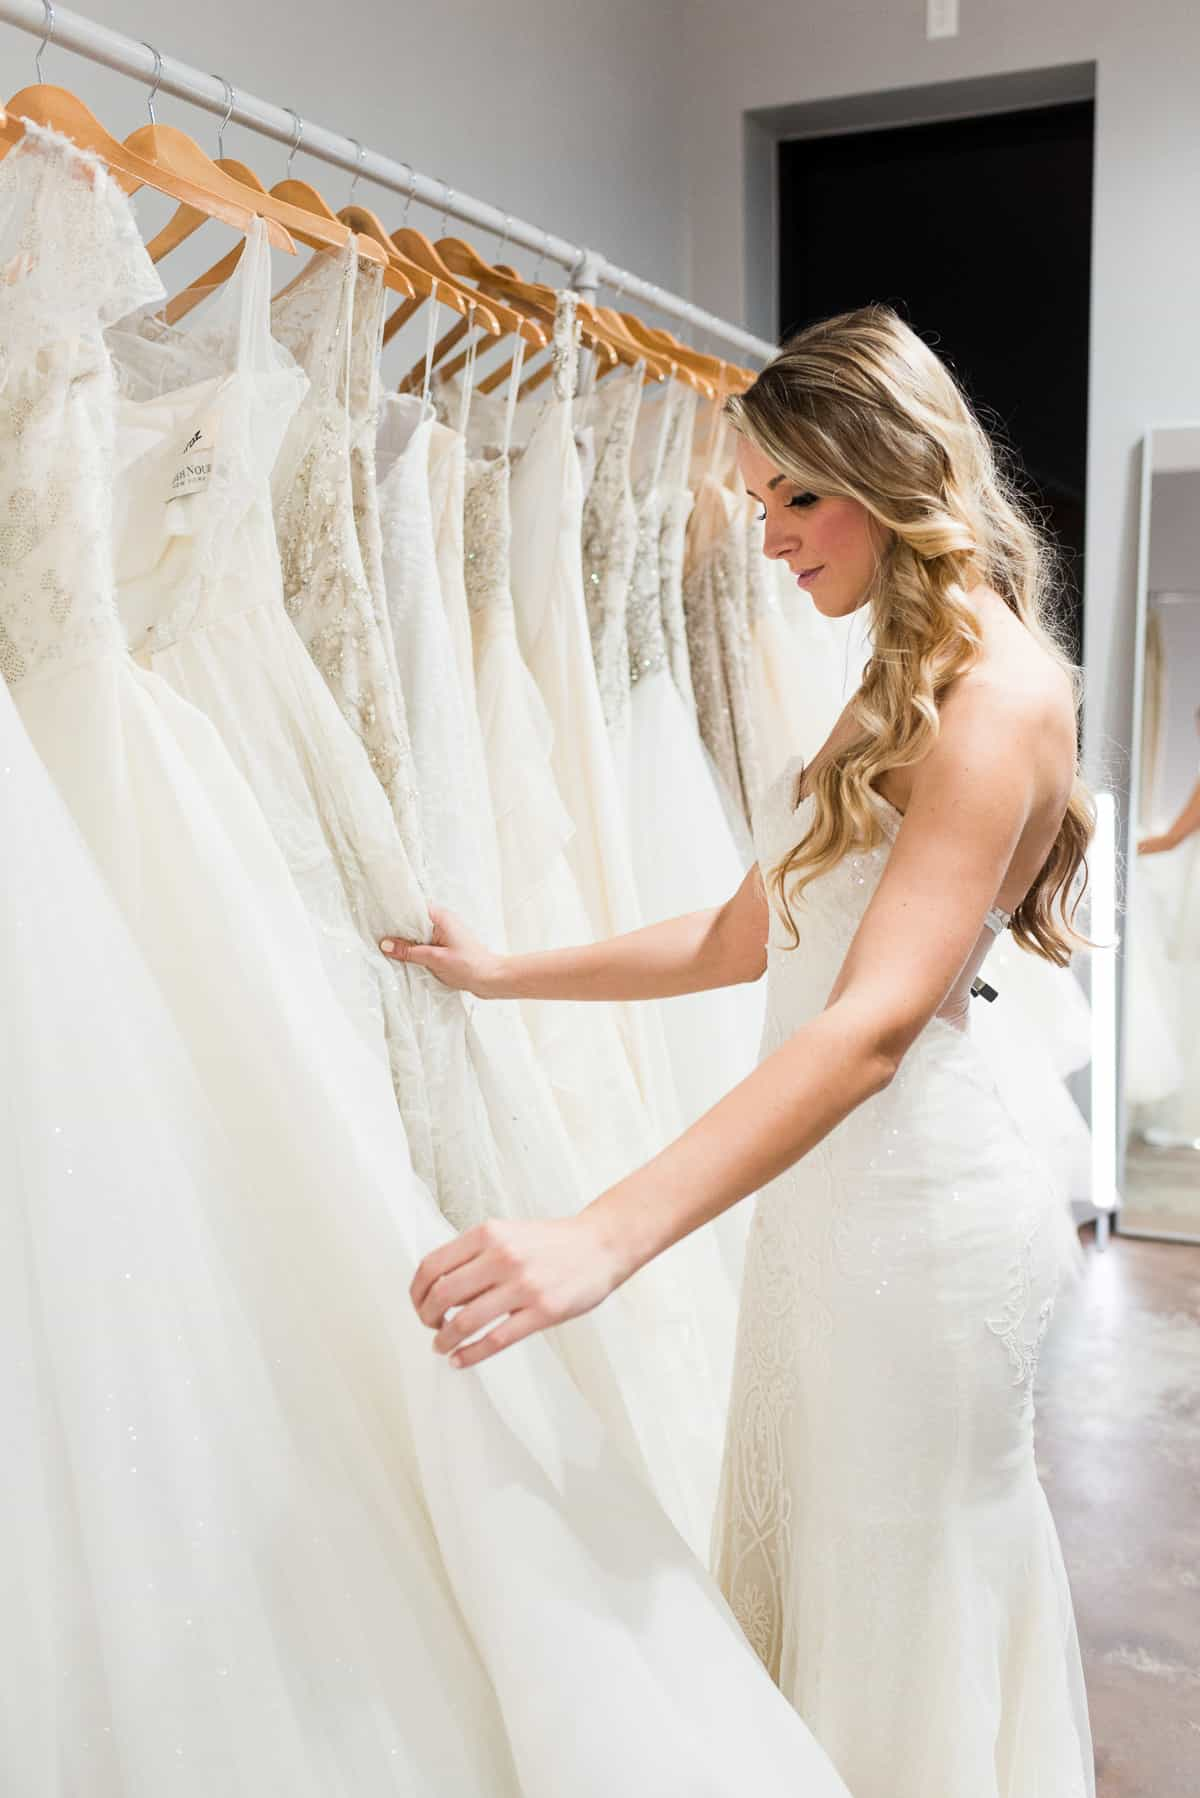 bride in white wedding dress looking at rack of white wedding dresses hanging at The Bridal Finery